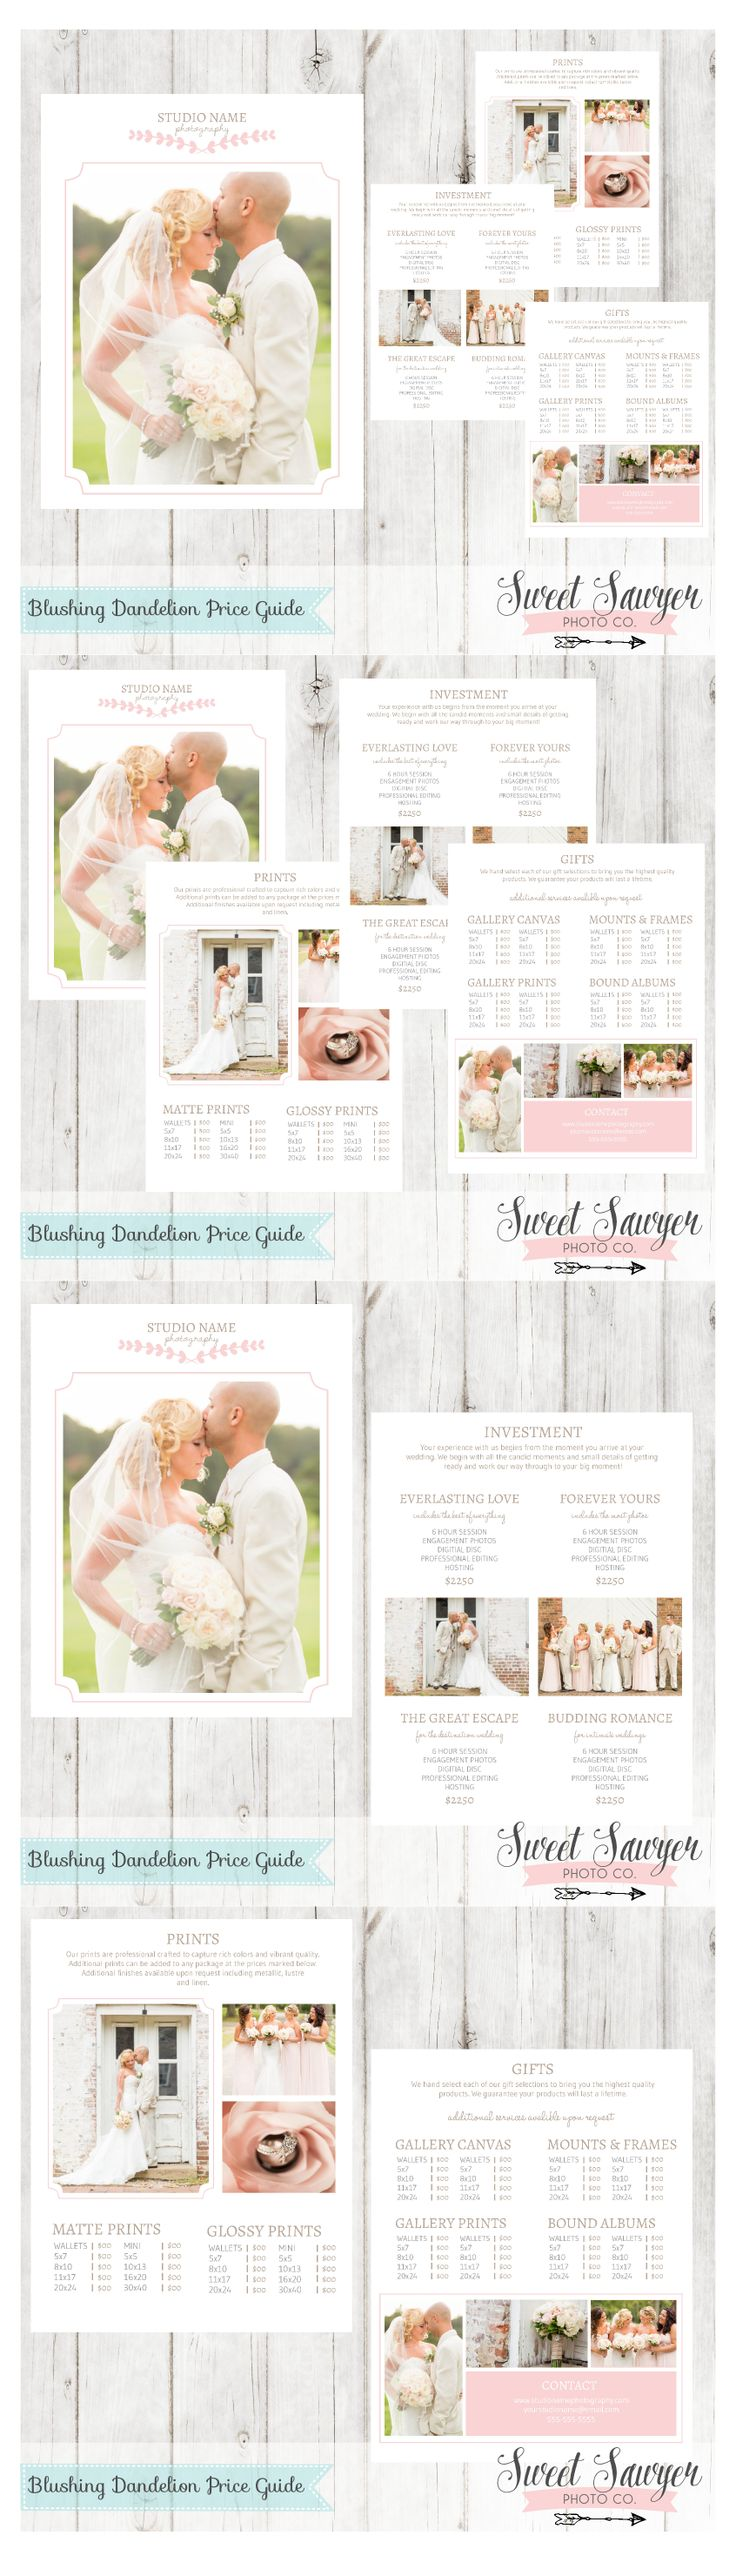 Wedding Price Guide Template for Photography Marketing. Handcrafted for wedding photographers.